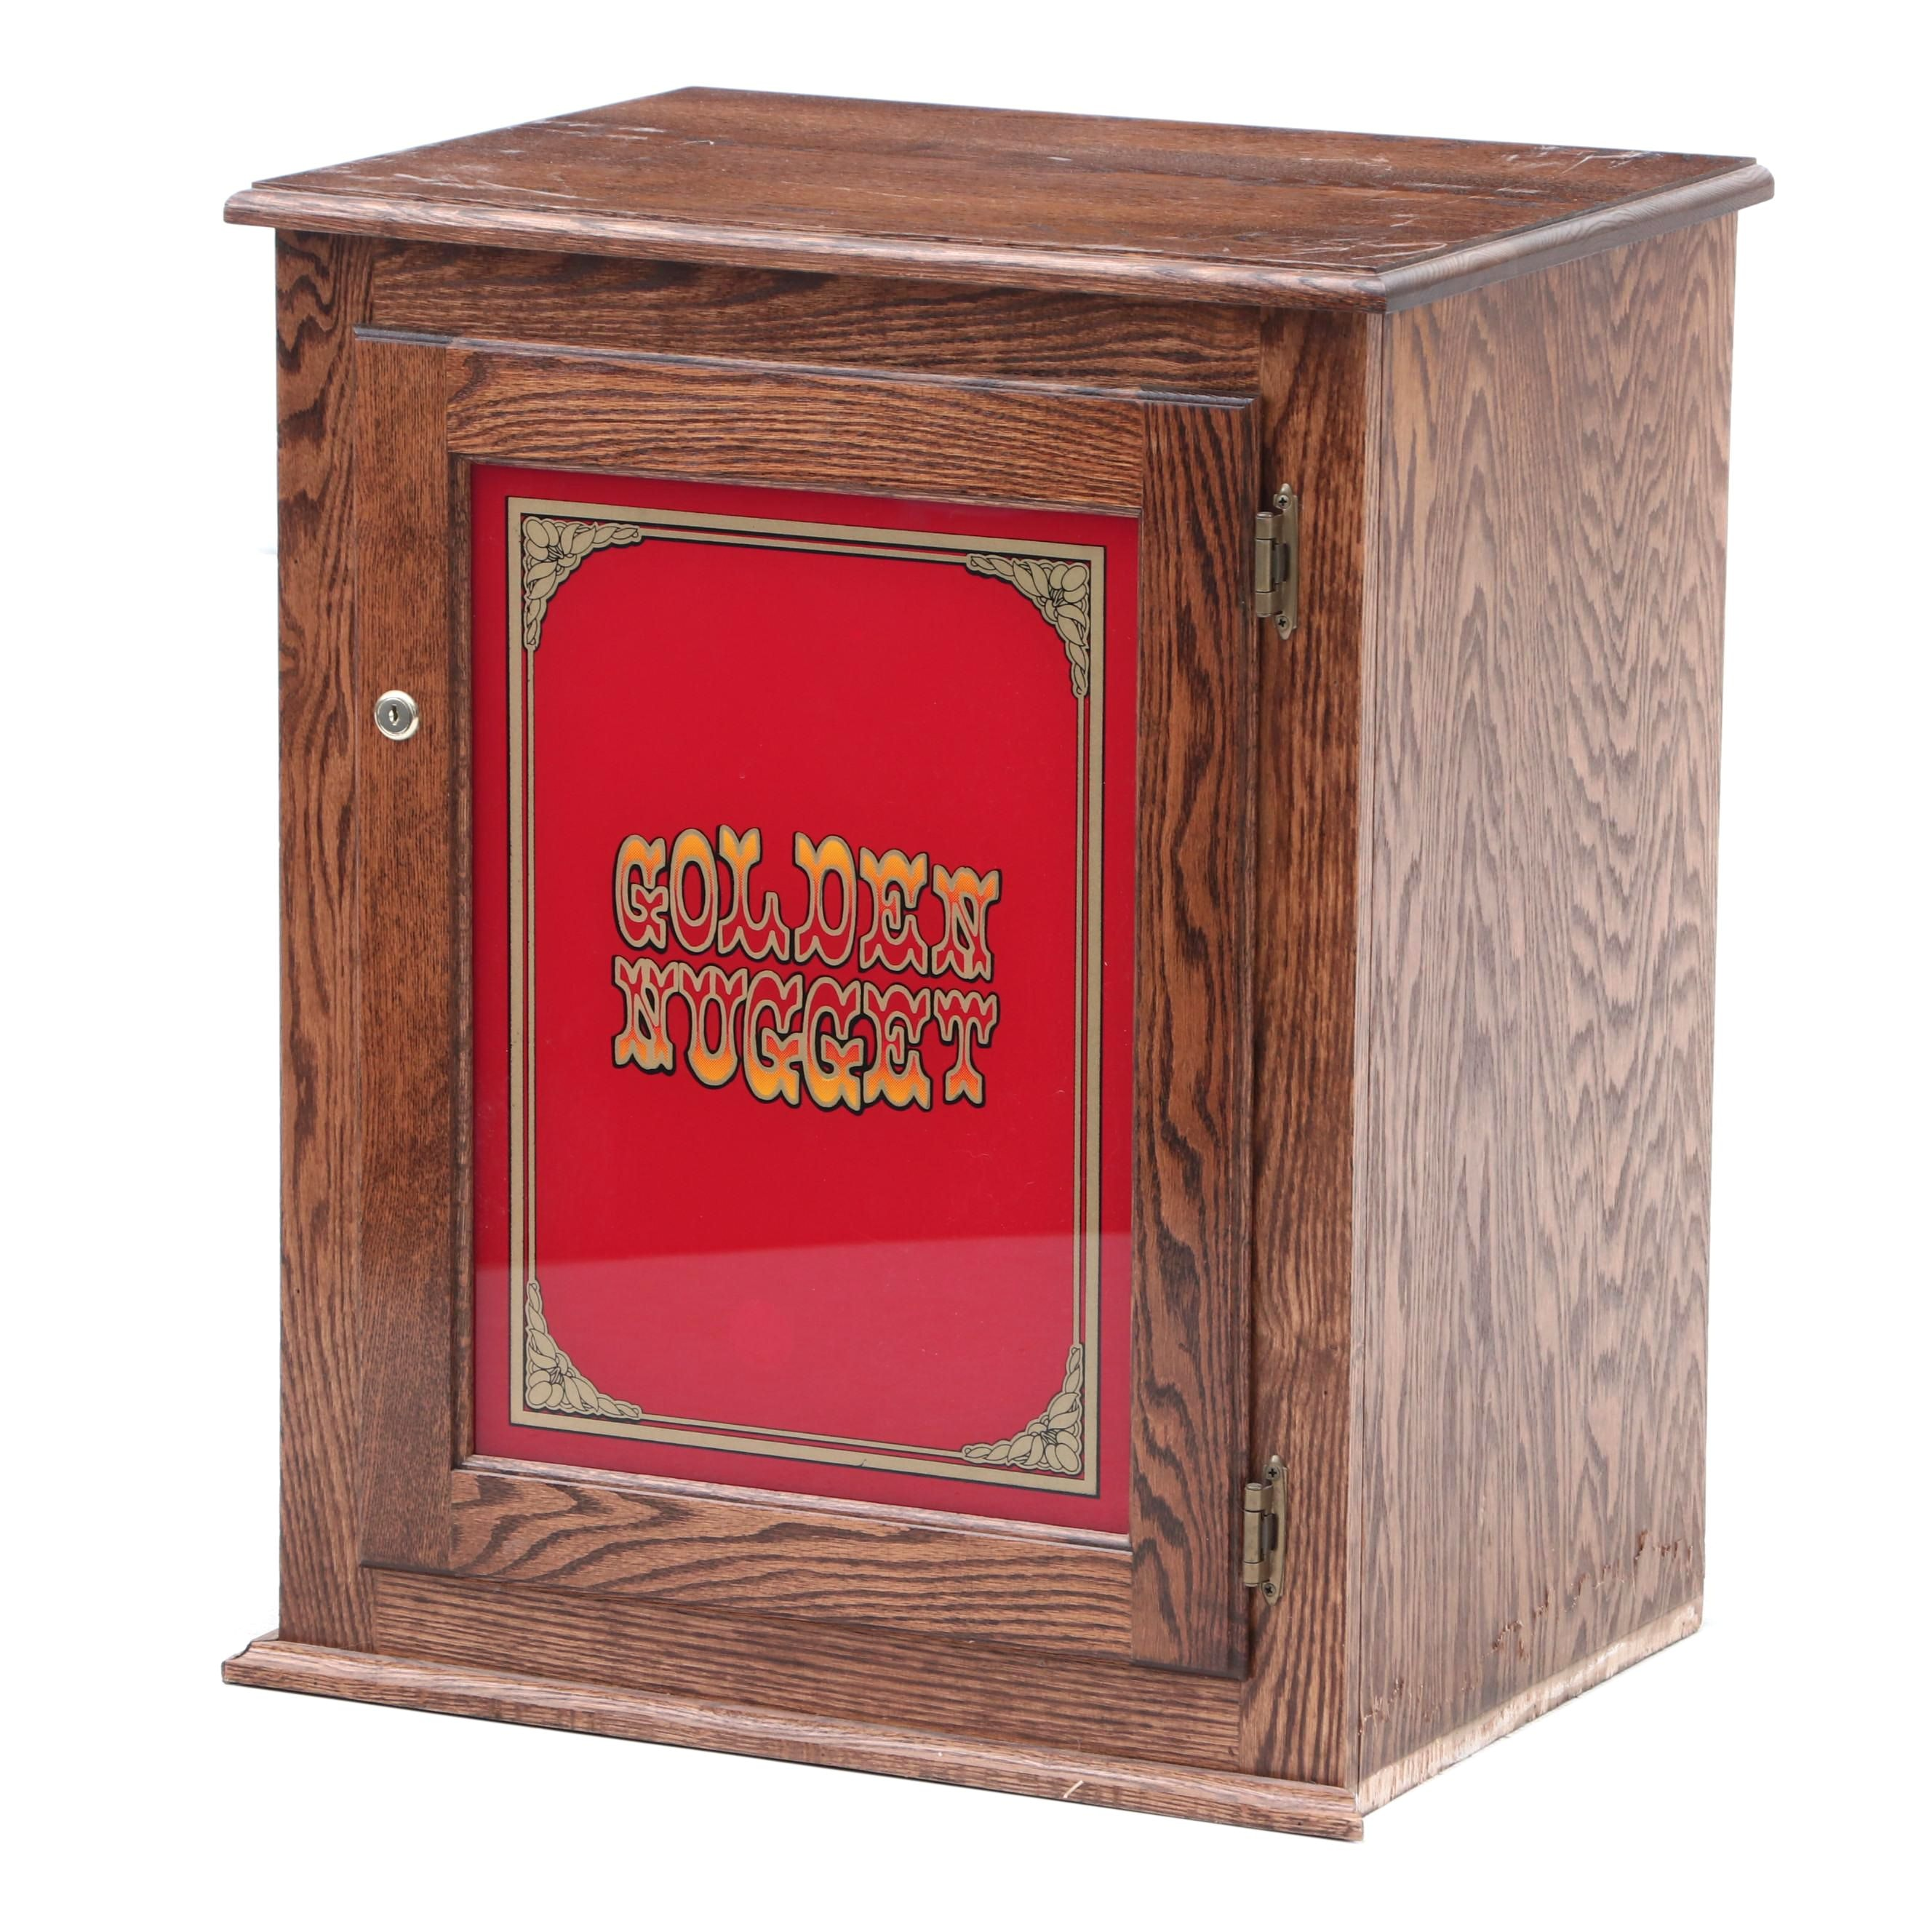 Golden Nugget Glass Insert Front Panel Cabinet in Oak